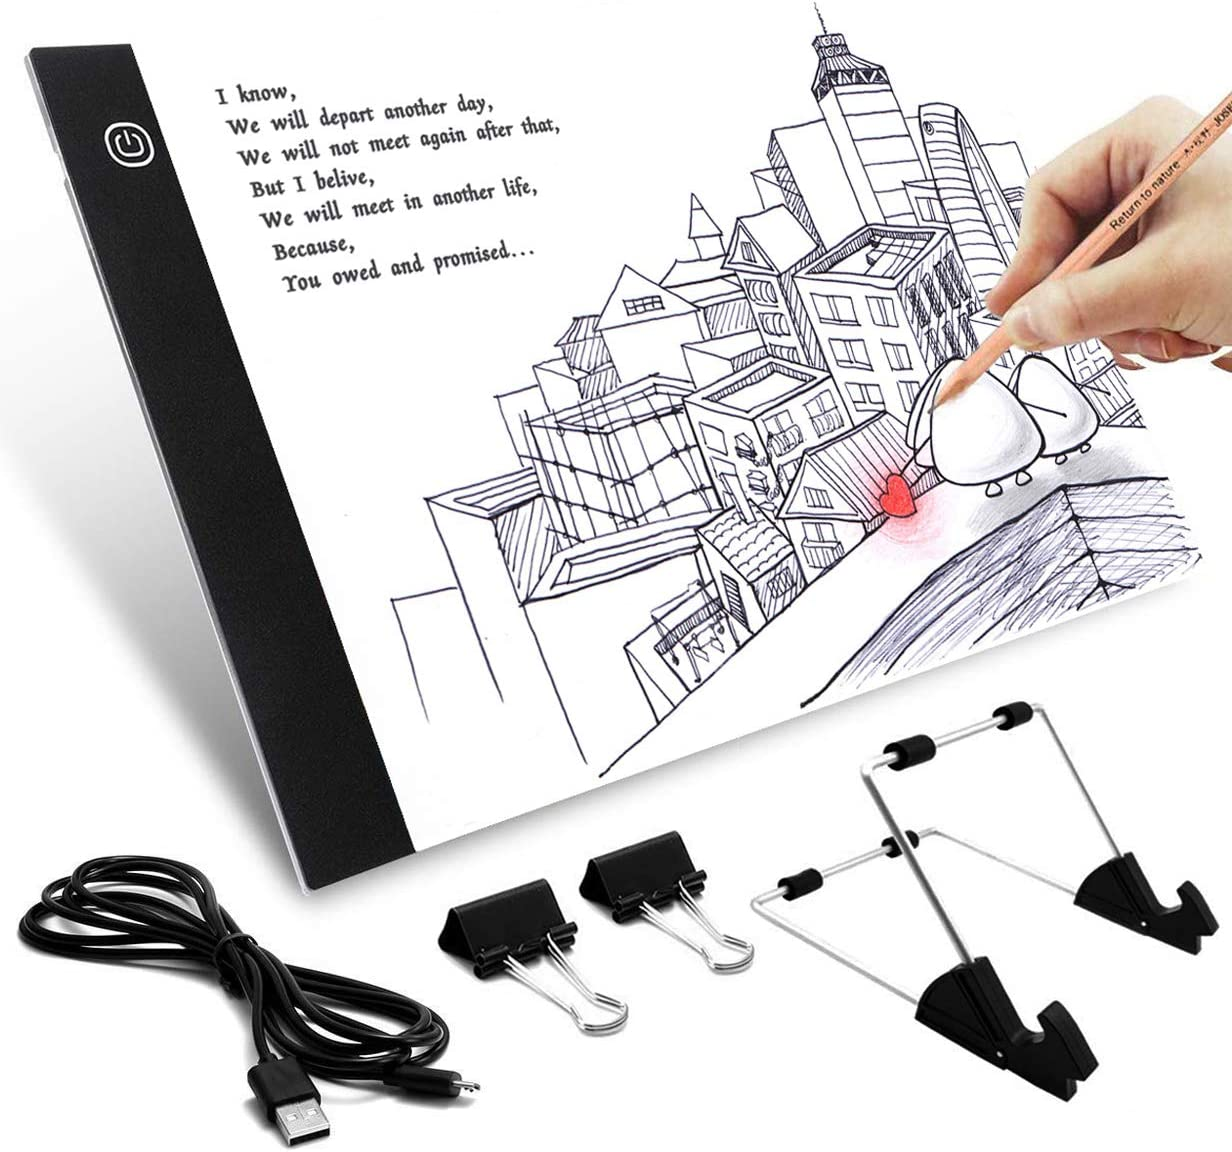 Amazon Com Better Selection Diamond Painting Light Board A4 Portable Led Light Box For Art Craft 5d Diy Diamond Painting Drawing Accessories For Adults Or Kids Great Gift Idea